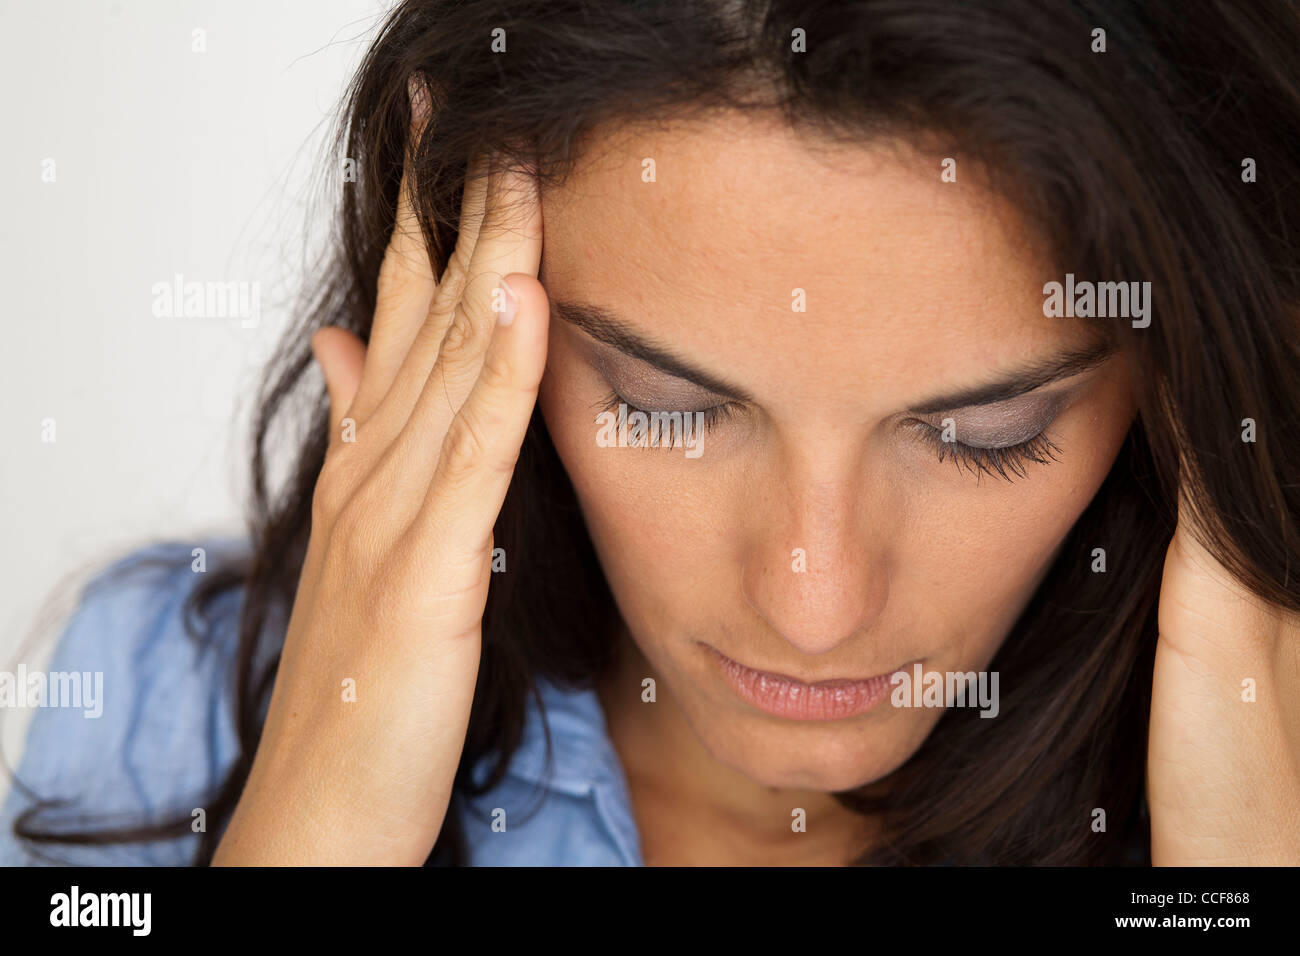 Latin woman suffering from headache Stock Photo